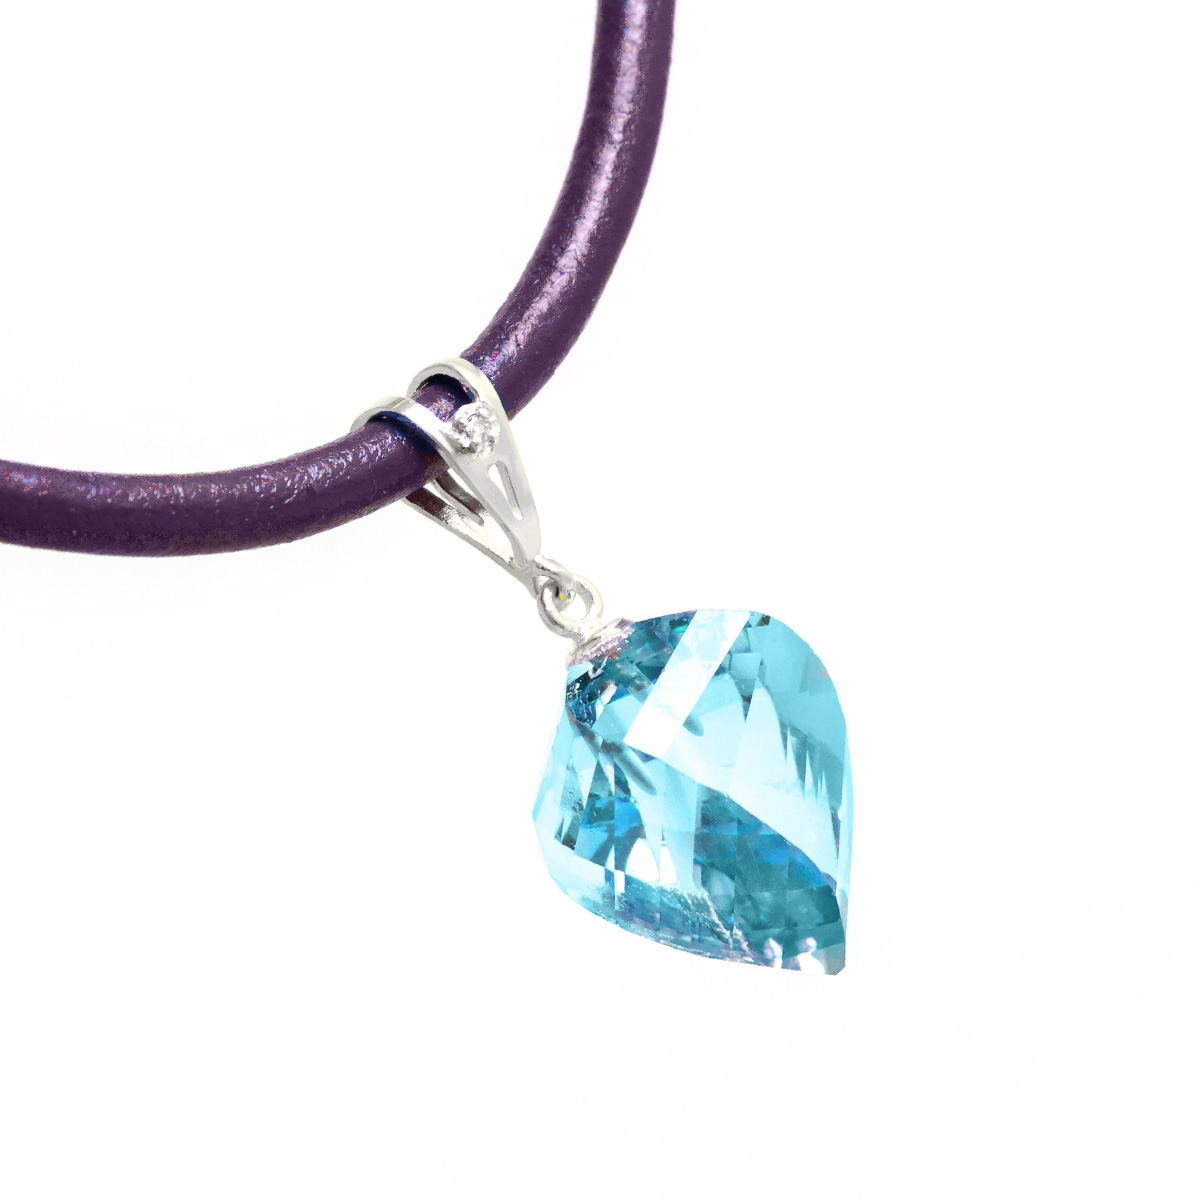 Blue Topaz and Diamond Pendant Necklace 13.9ct in 9ct White Gold